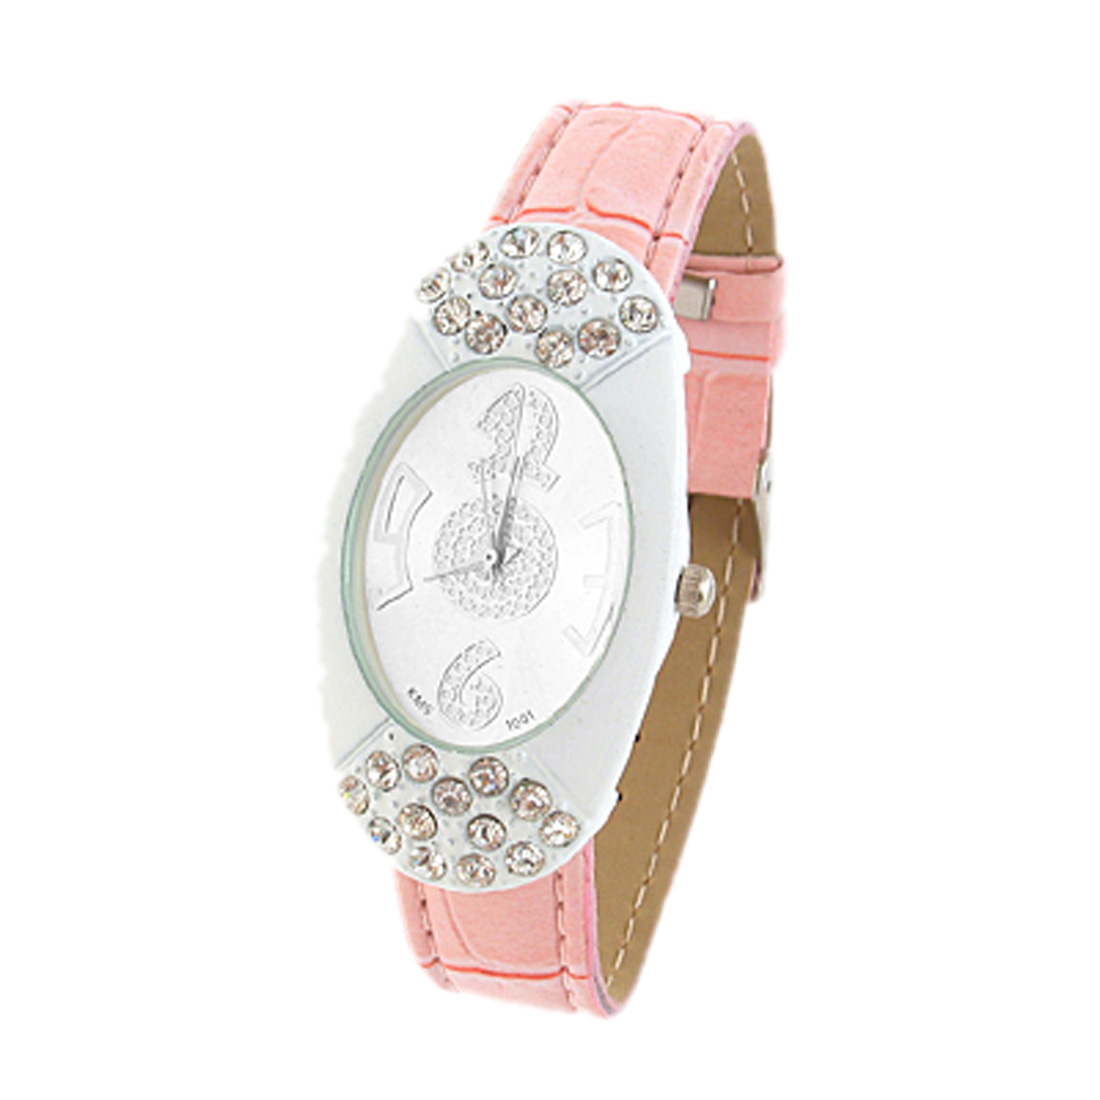 Fashion Jewelry Exquisite White Quartz Watch Wrist Watch- Red strap